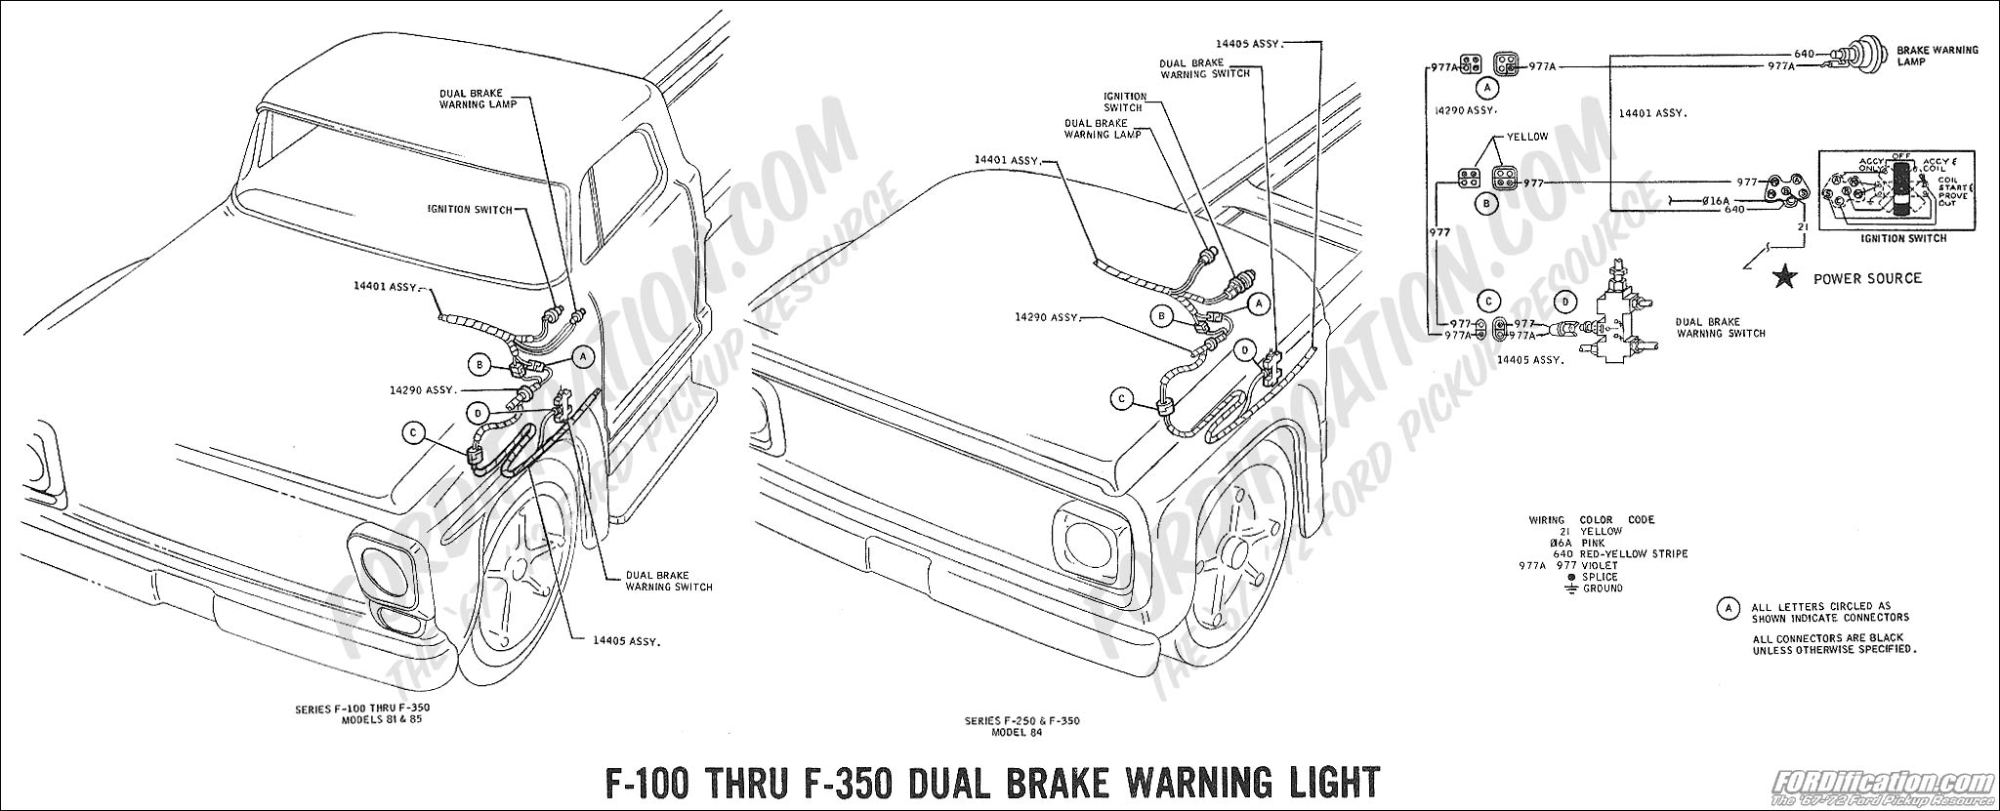 hight resolution of ford truck technical drawings and schematics section h wiring1969 f 100 thru f 350 dual brake